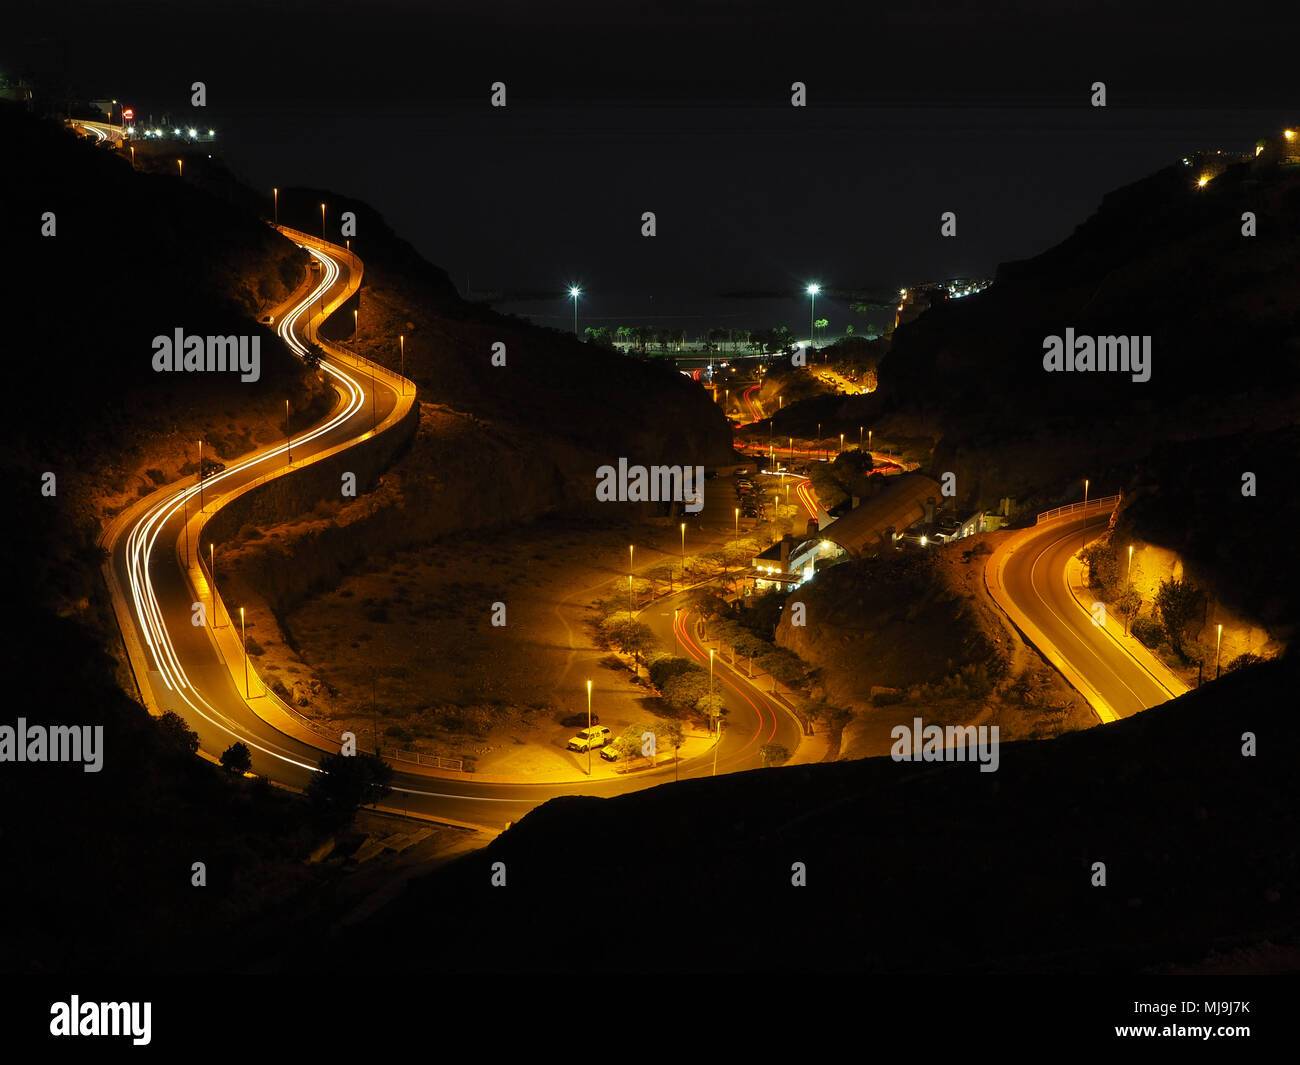 Winding road lit up with street lights - Stock Image